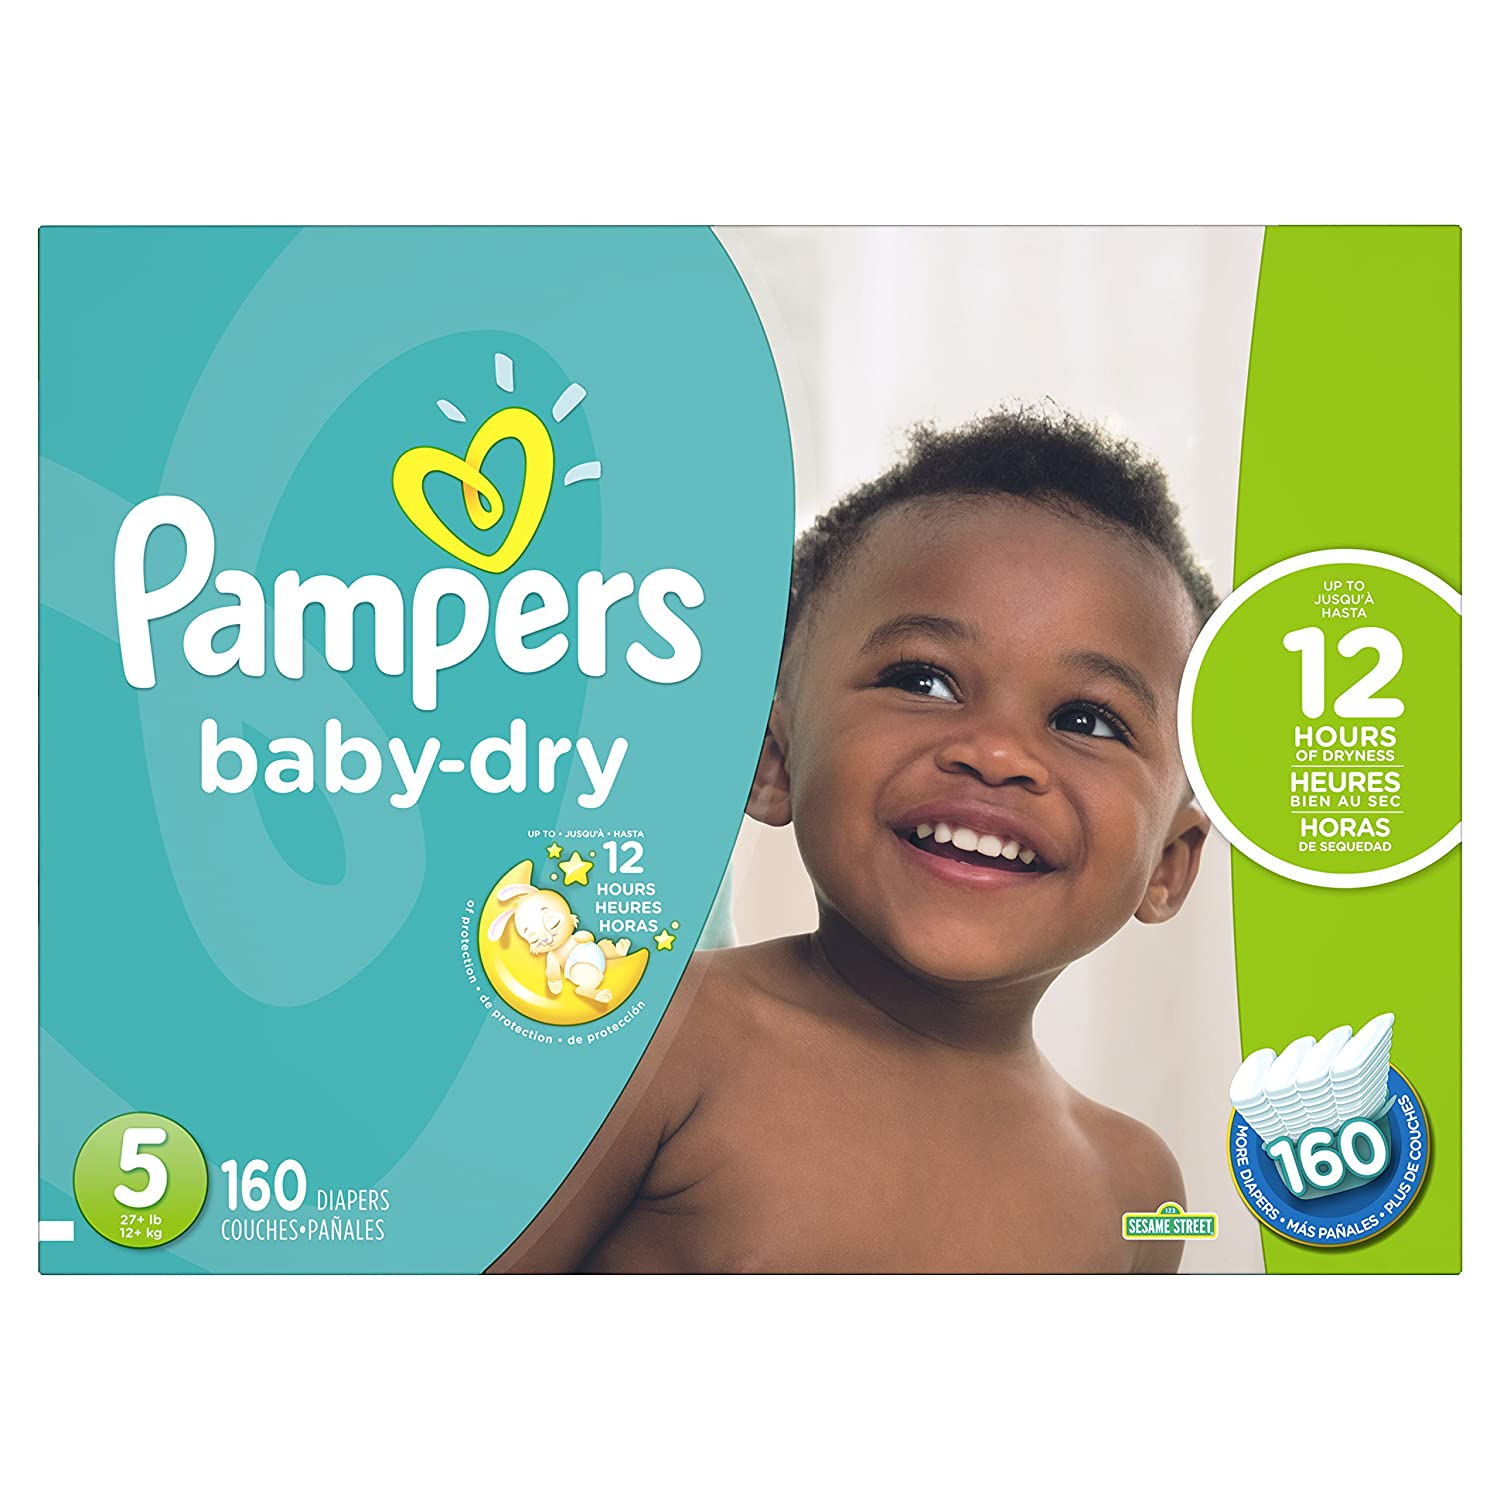 Pampers Baby Dry Disposable Diapers Size 2, Economy Pack Plus, 210 Count Procter and Gamble